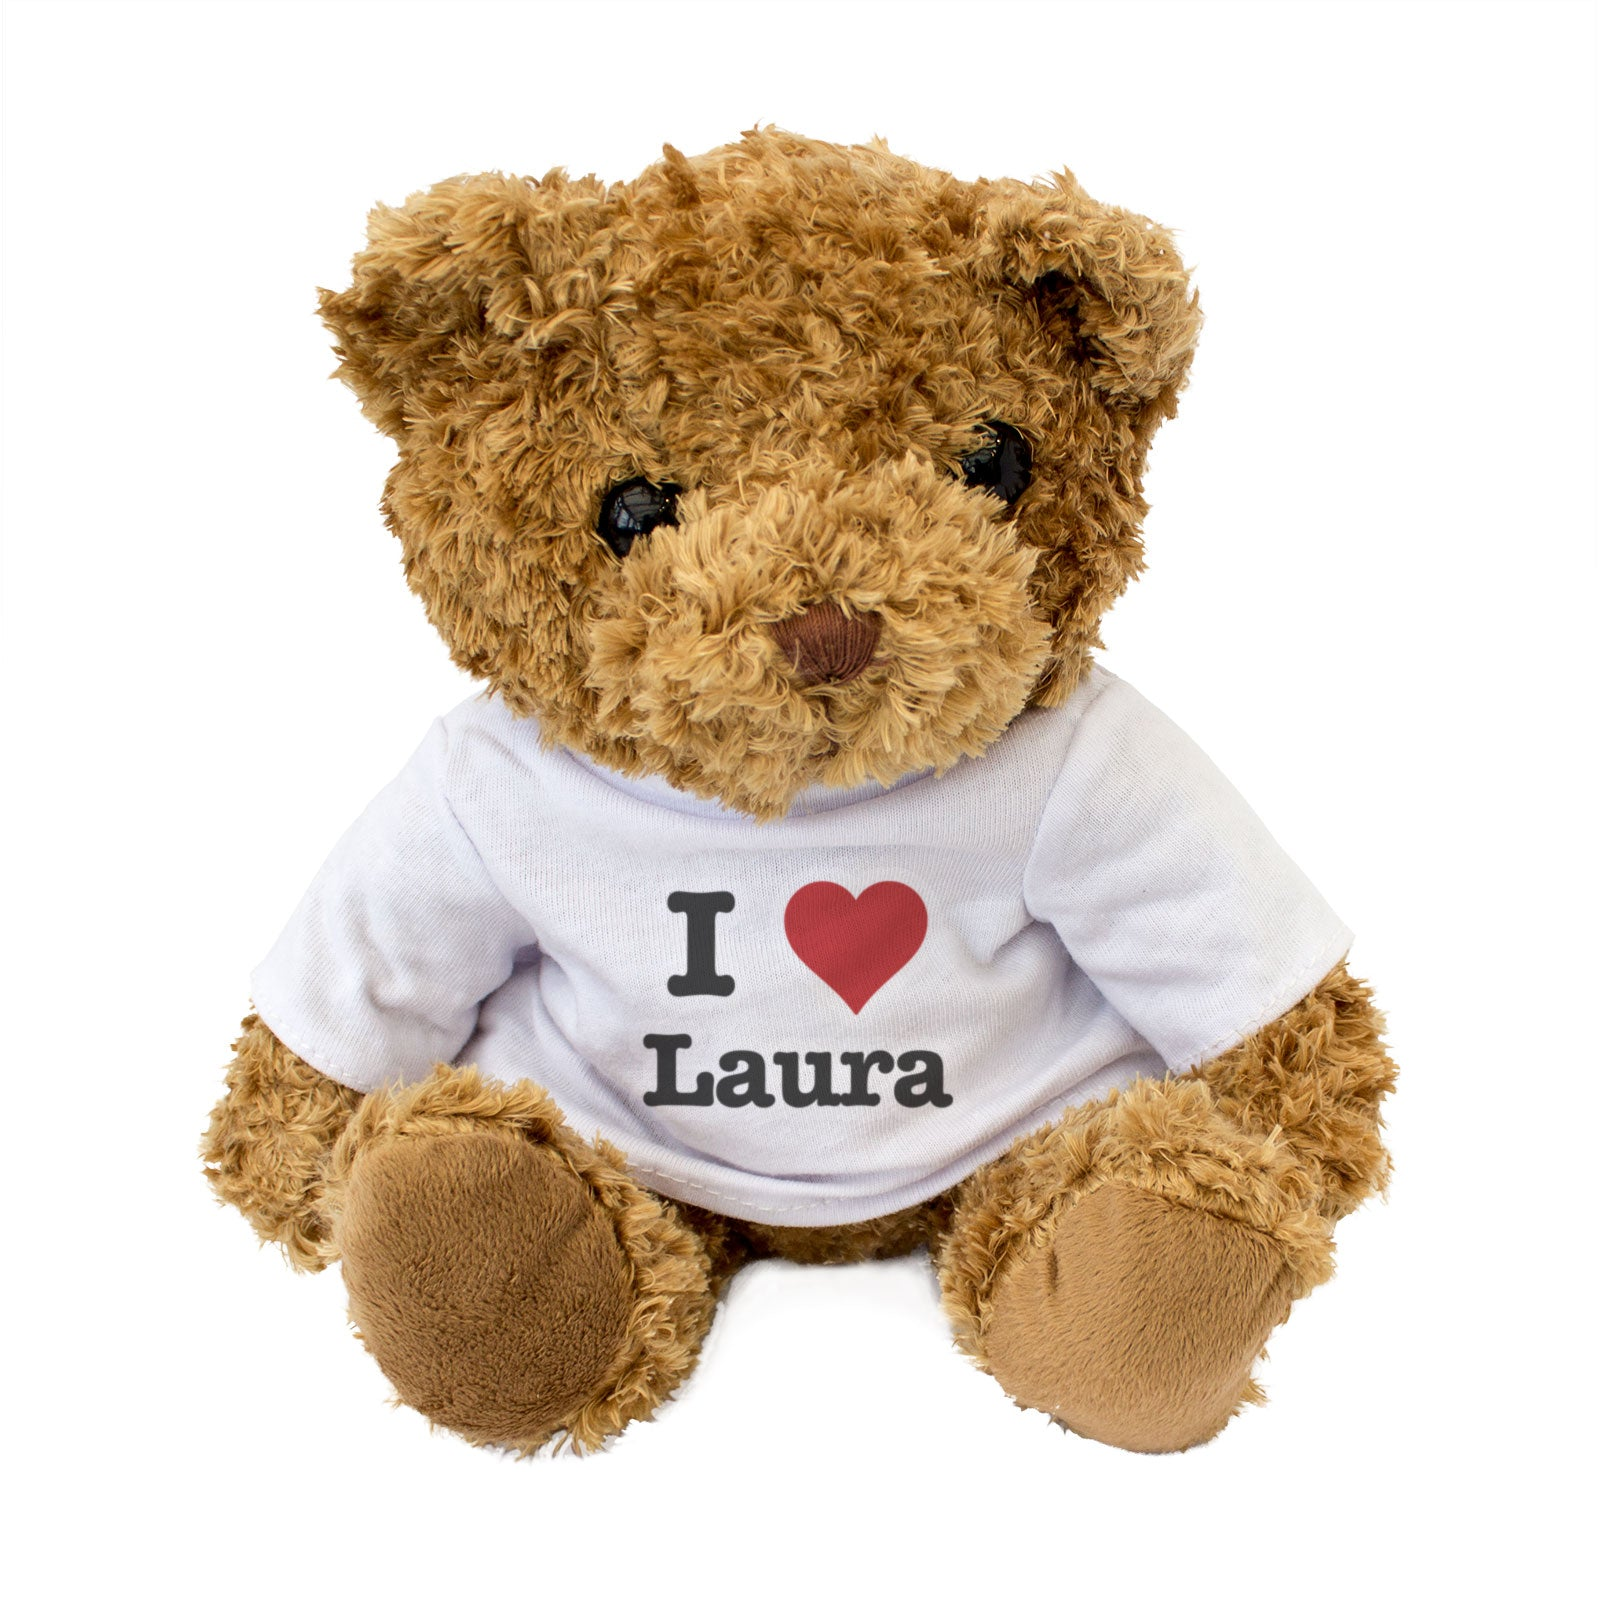 I Love Laura - Teddy Bear